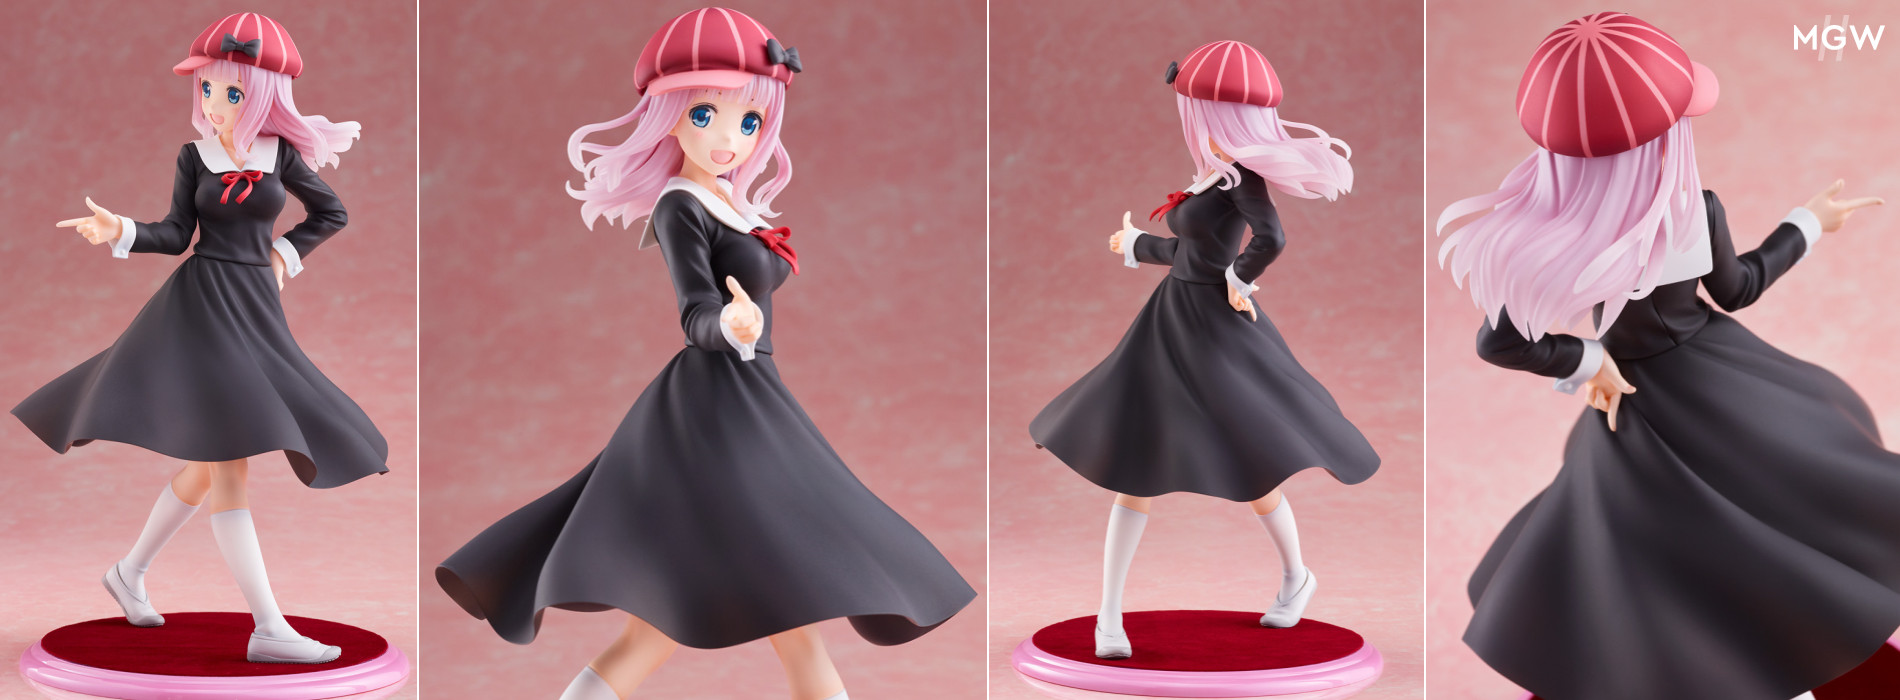 Chikatto Chika Chika Fujiwara Chika by WAVE from Kaguya sama MyGrailWatch Anime Figure Guide